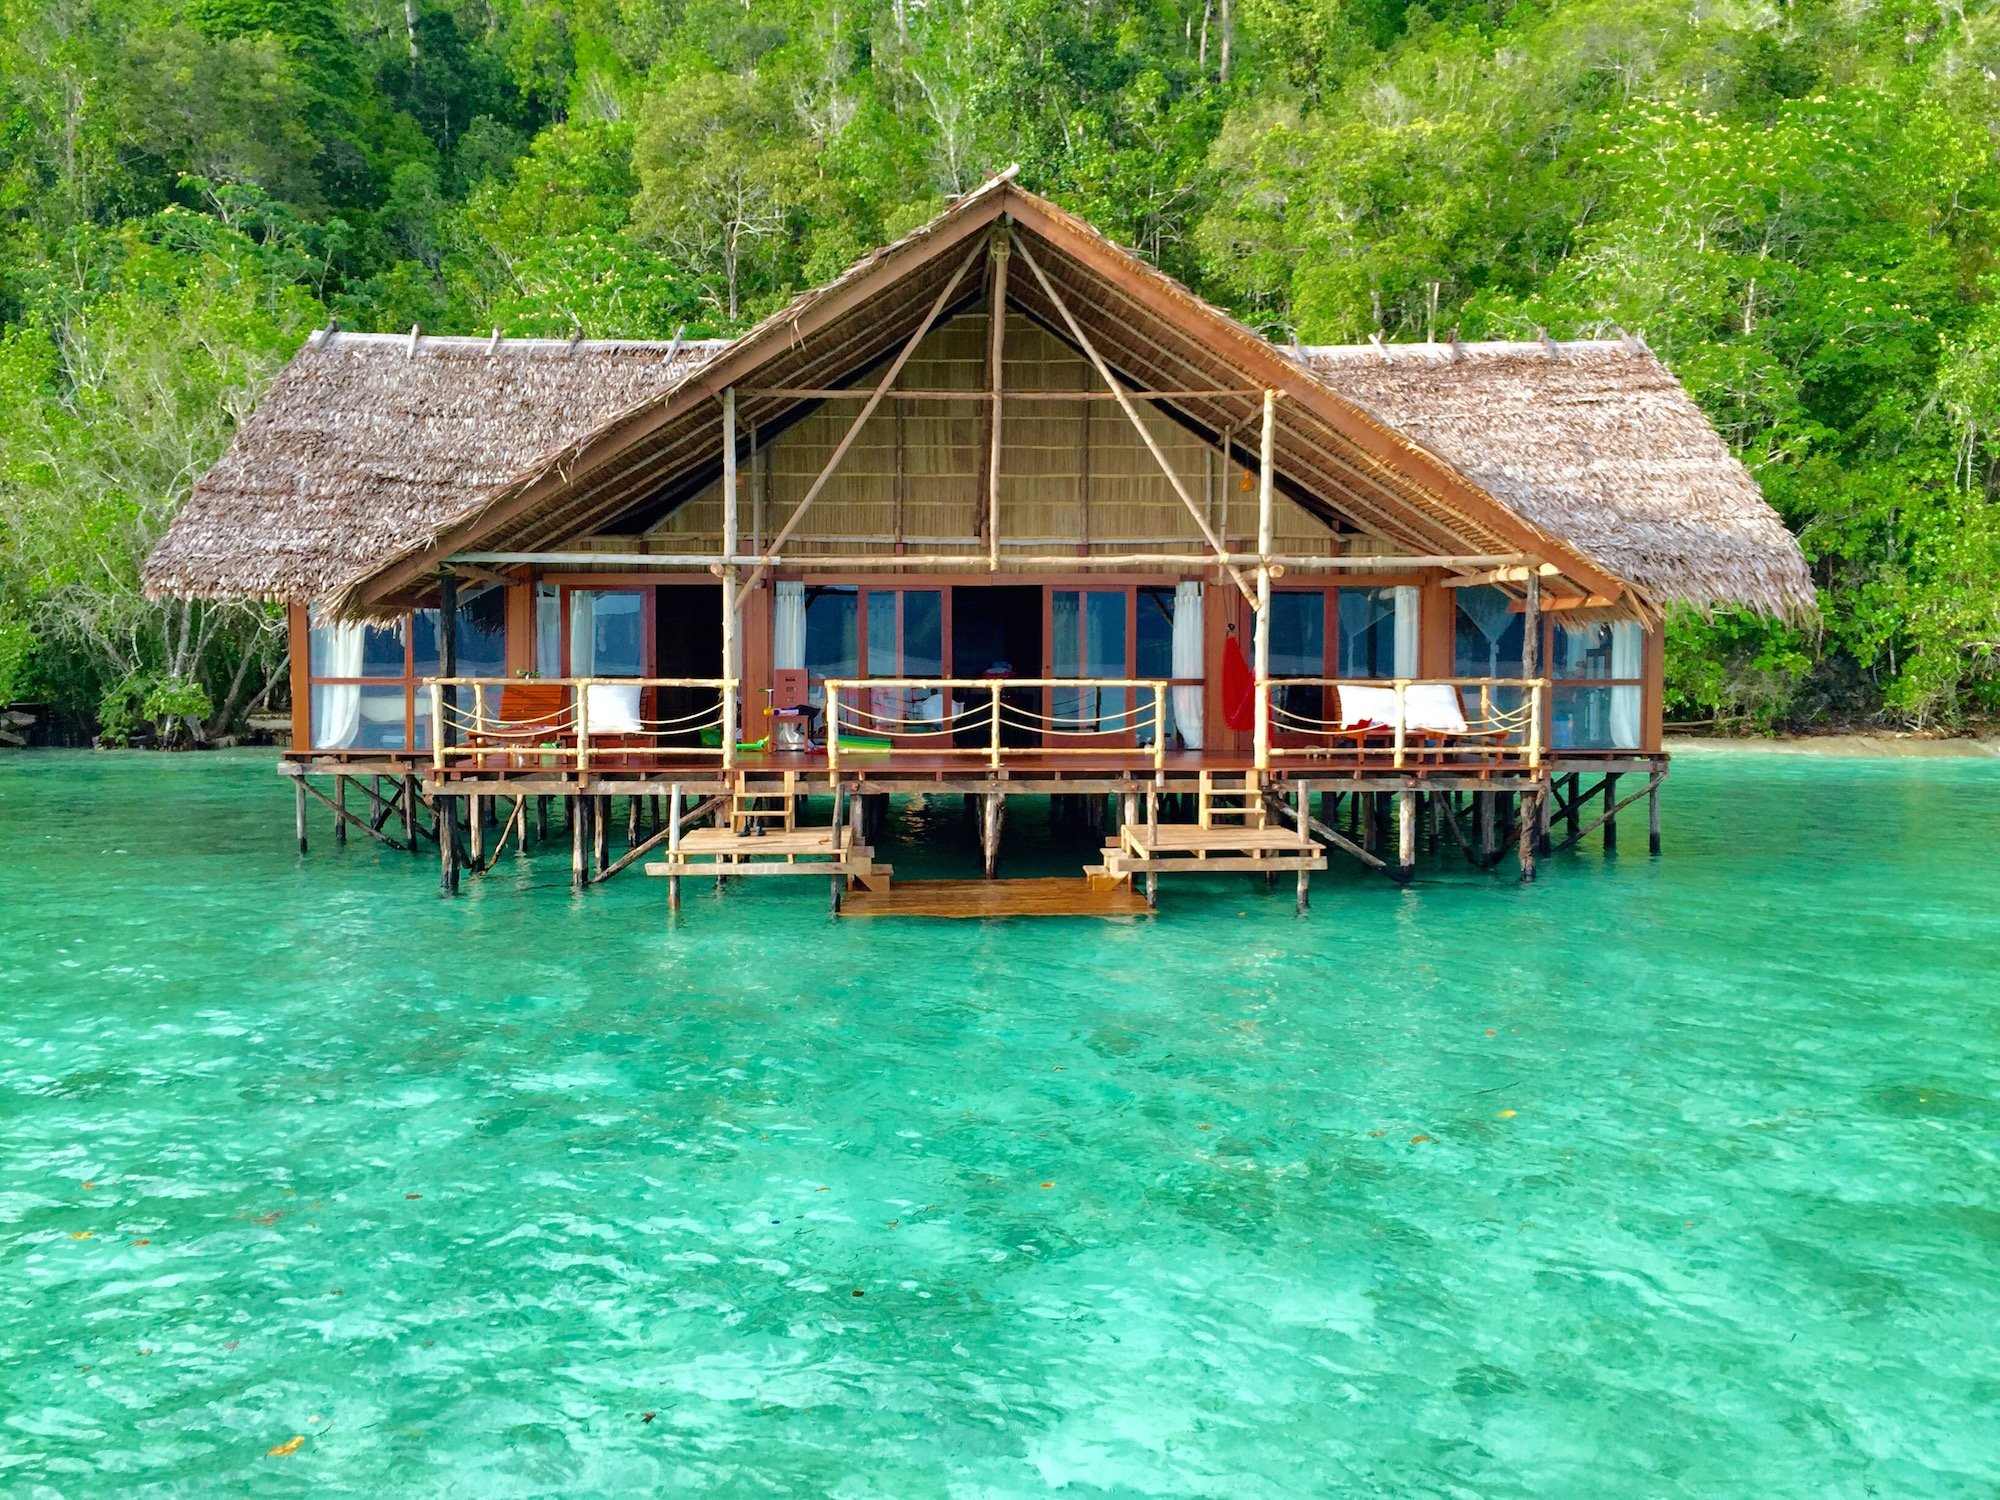 Water Bungalows At The Heart Of Raja Ampat Papua